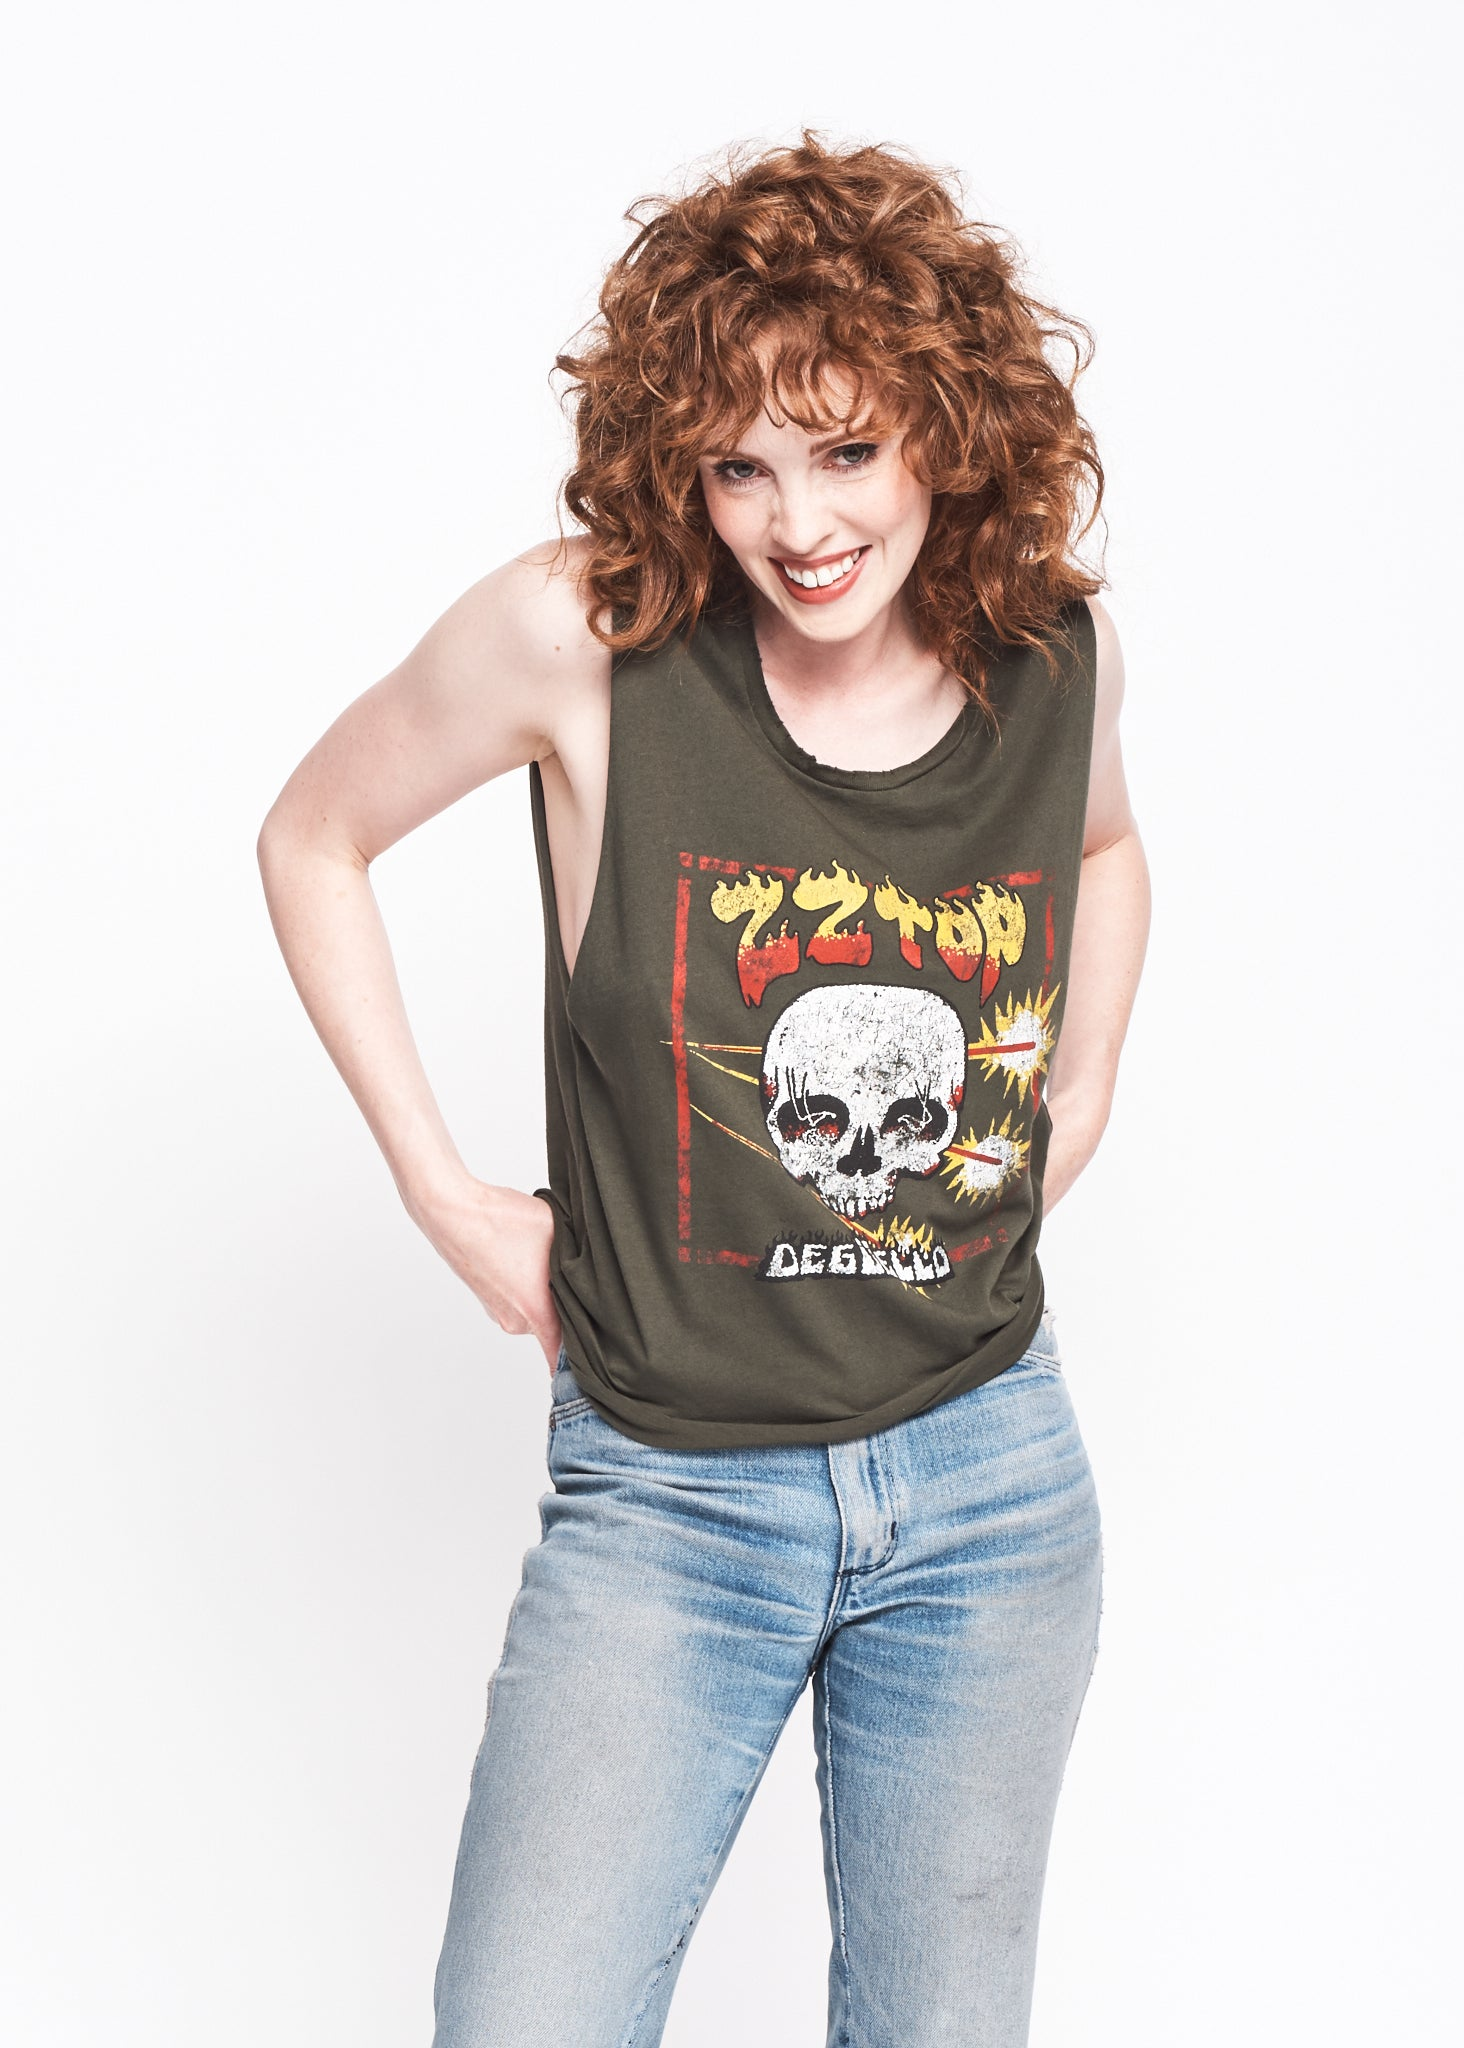 ZZ Top Deguello Muscle Tee - Black Forest - Women's Muscle Tee - Midnight Rider